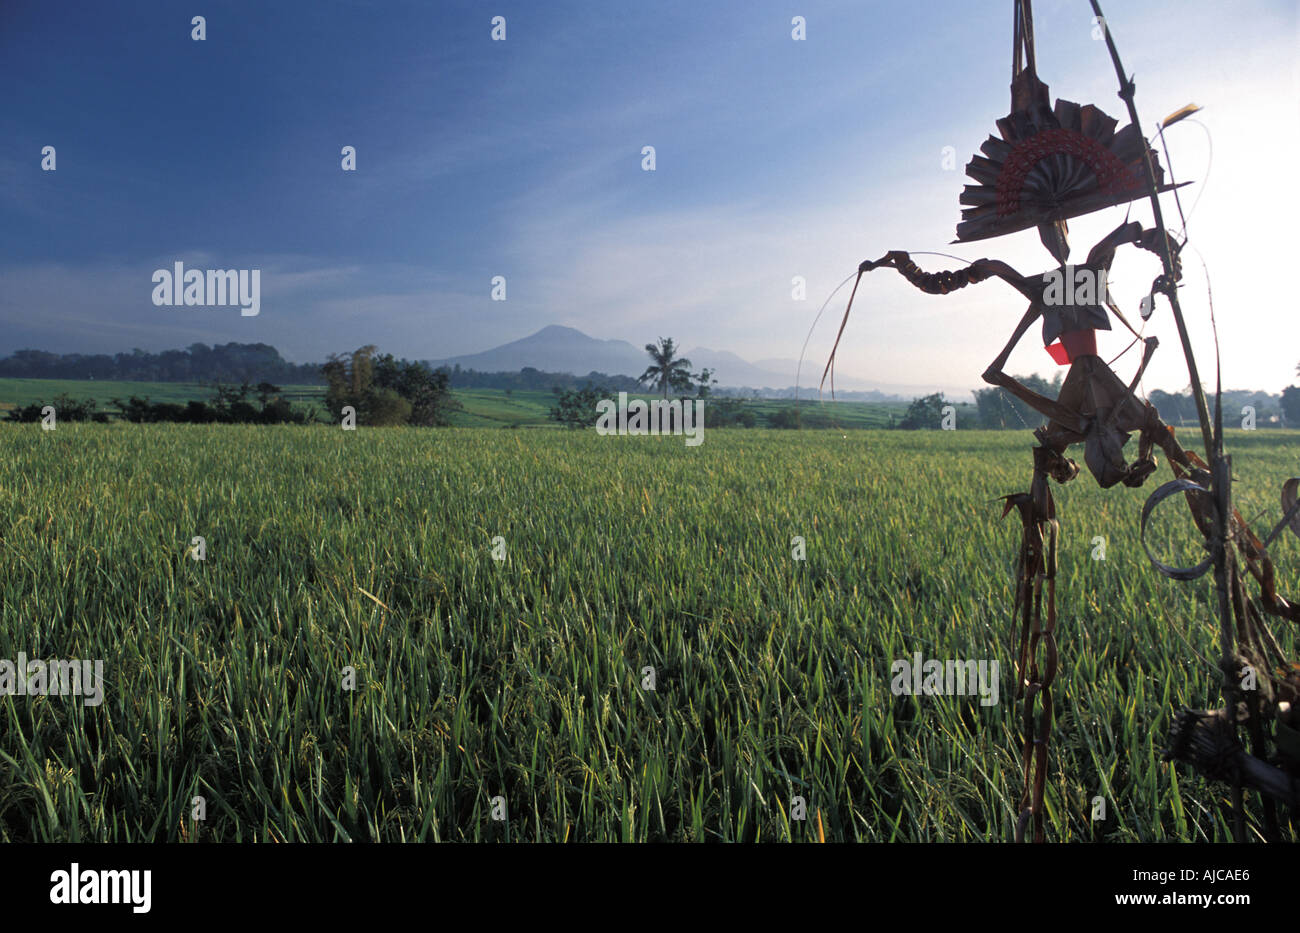 Rice fields at dawn Gunung Batukau in the distance Inland of Yeh Gangga Bali Indonesia Rice Goddess Dewi Sri offering - Stock Image